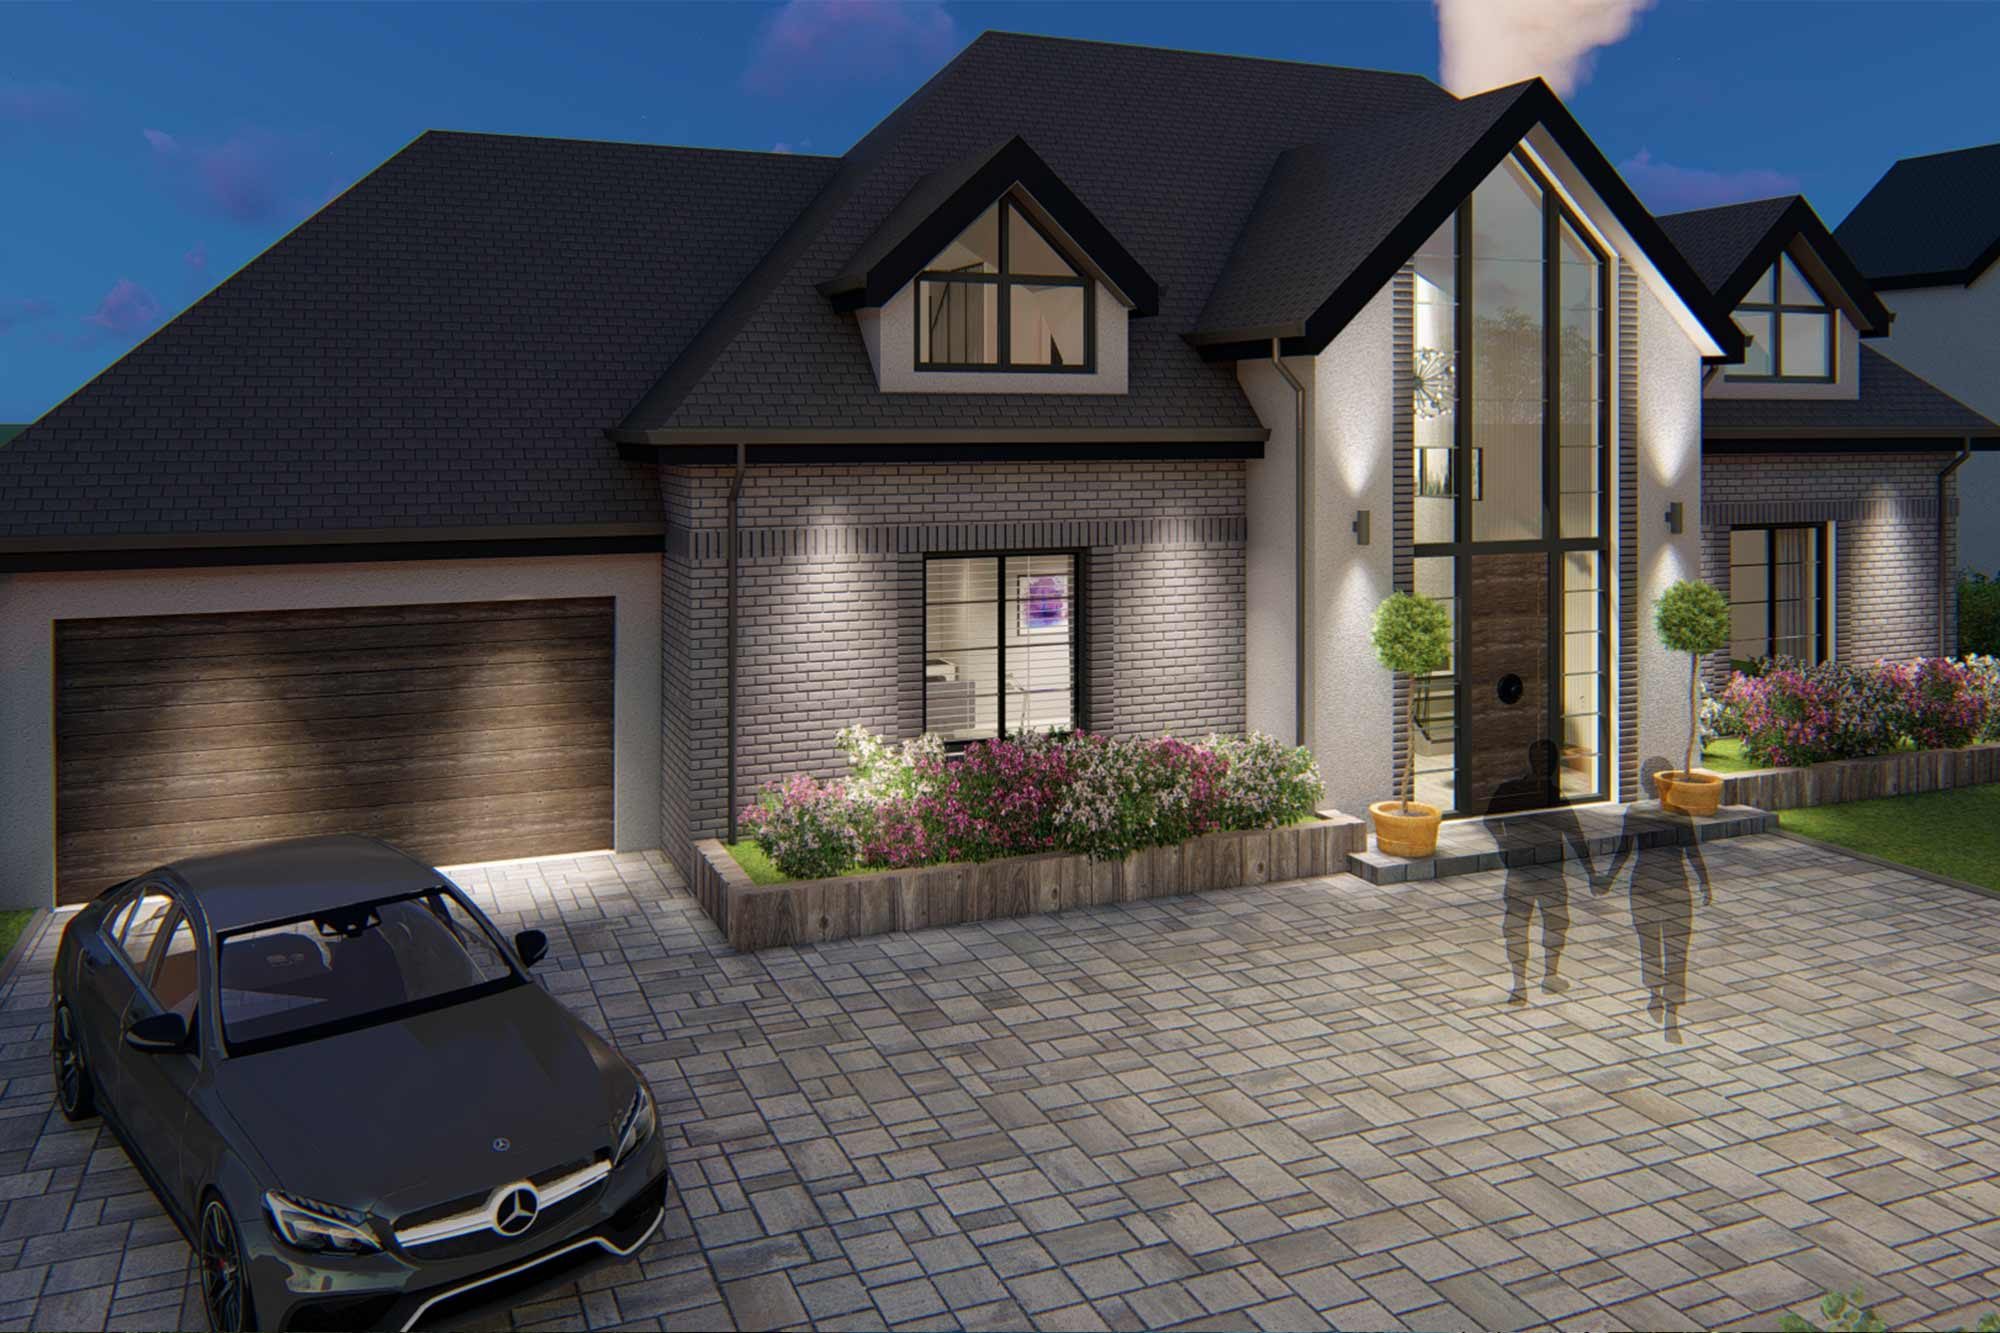 Bespoke, contemporary, house architectural design featuring glazed central apex entrance in Poulton-le-Fylde